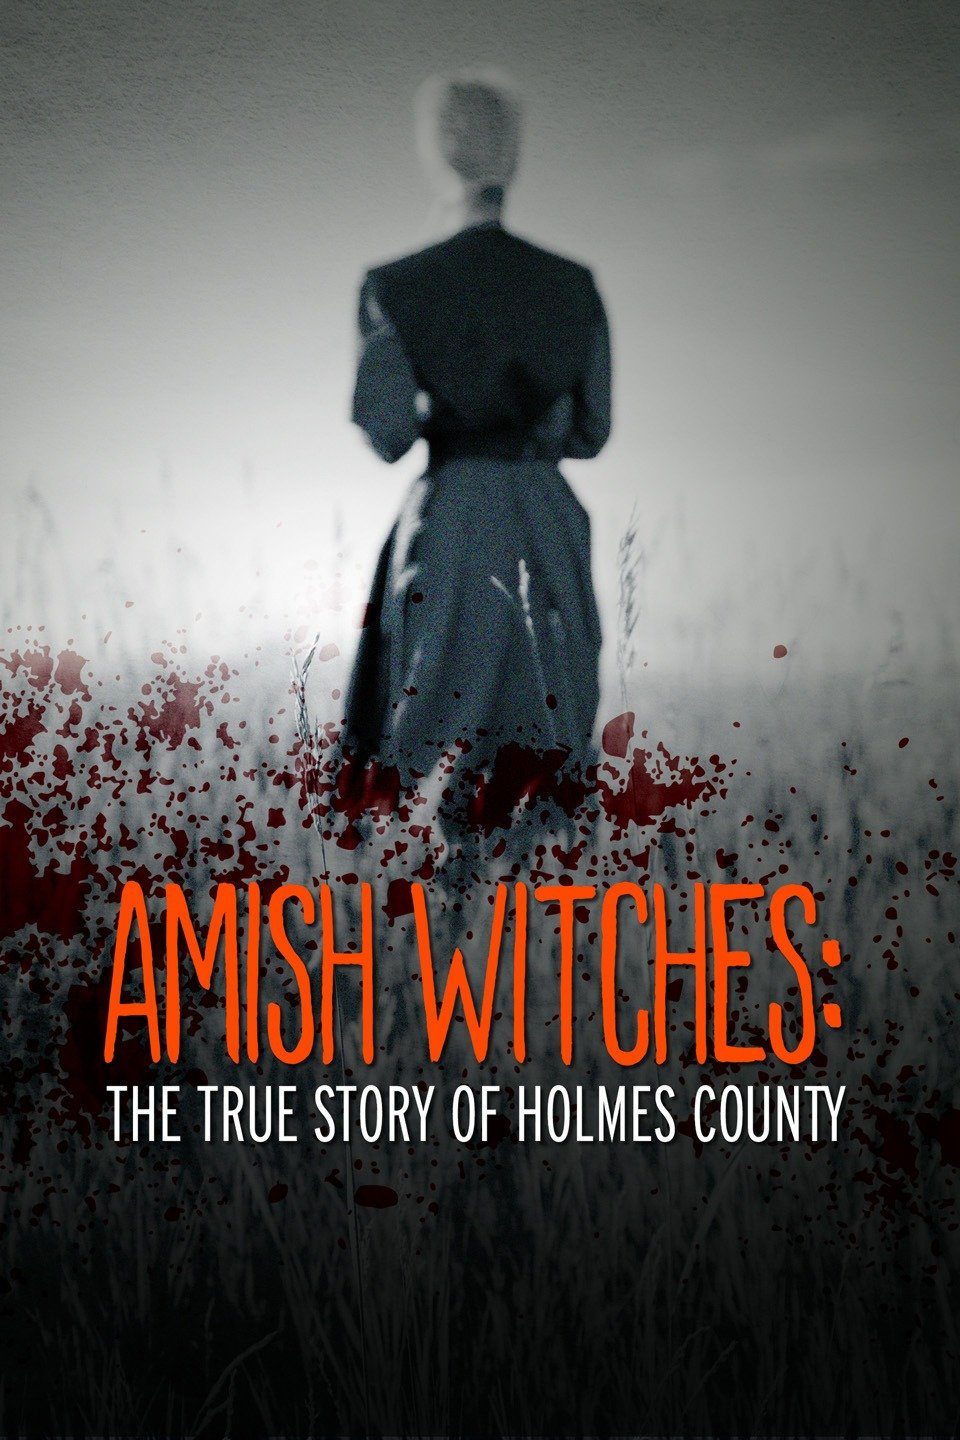 Amish_Witches_The_True_Story_of_Holmes_County_2016_12521289.jpg